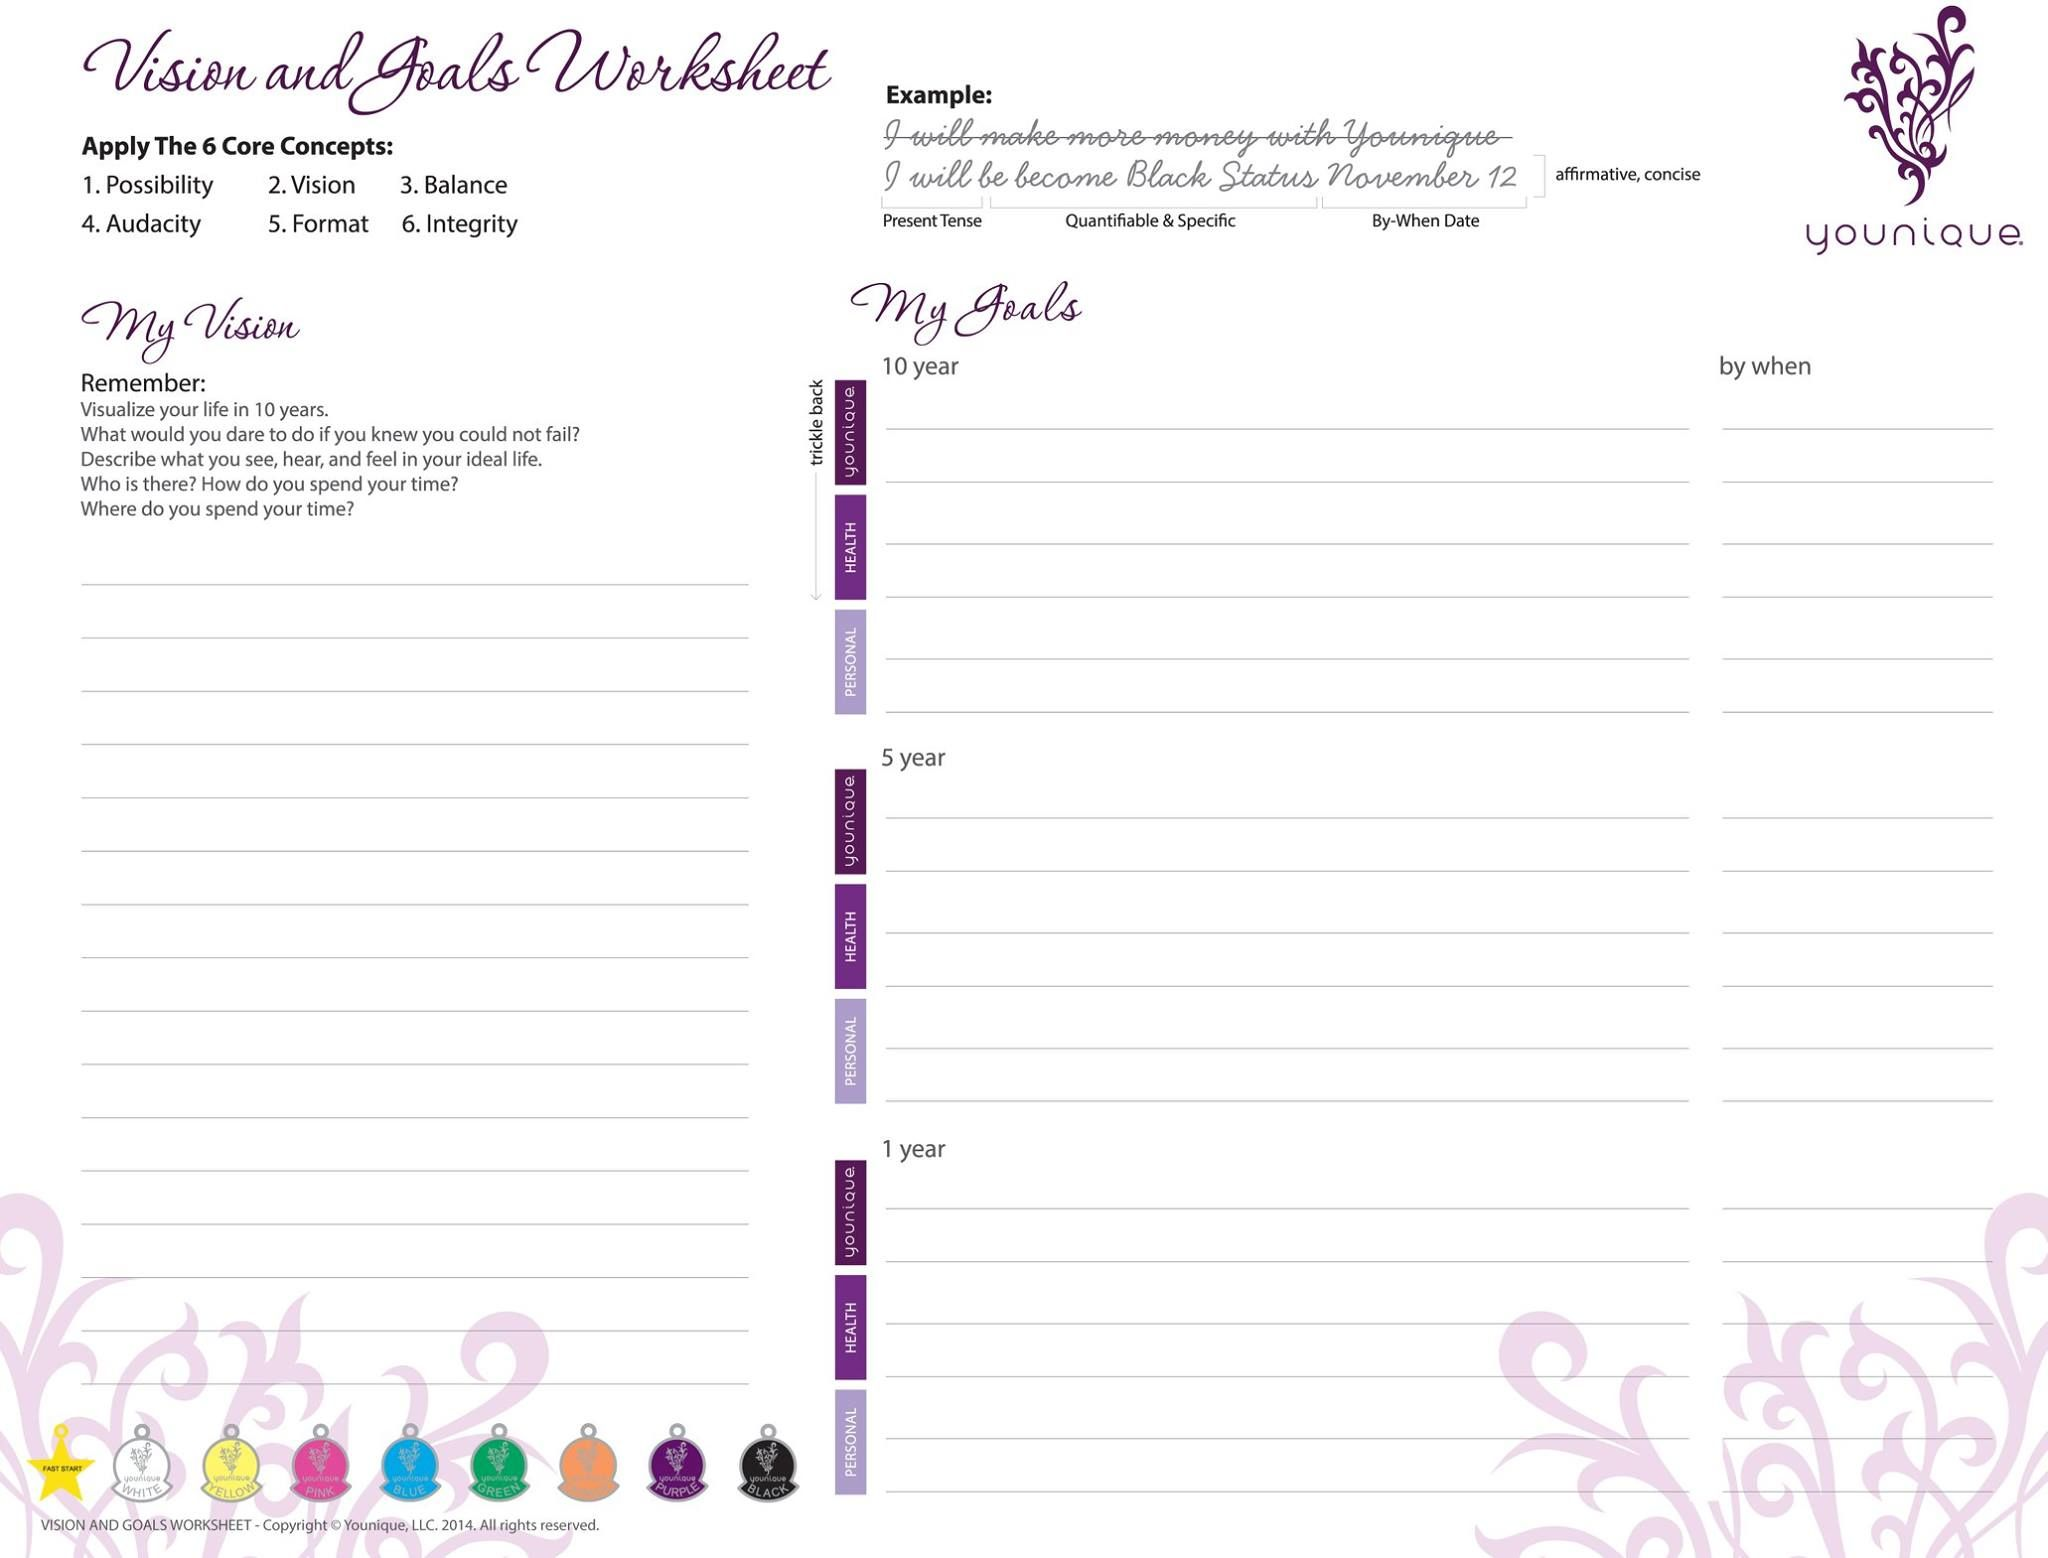 Younique Vision And Goals Work Sheet Pdf File Print Out Available At Www Facebook Com Vinylglphicsc Younique Younique Business Opportunity Younique Business